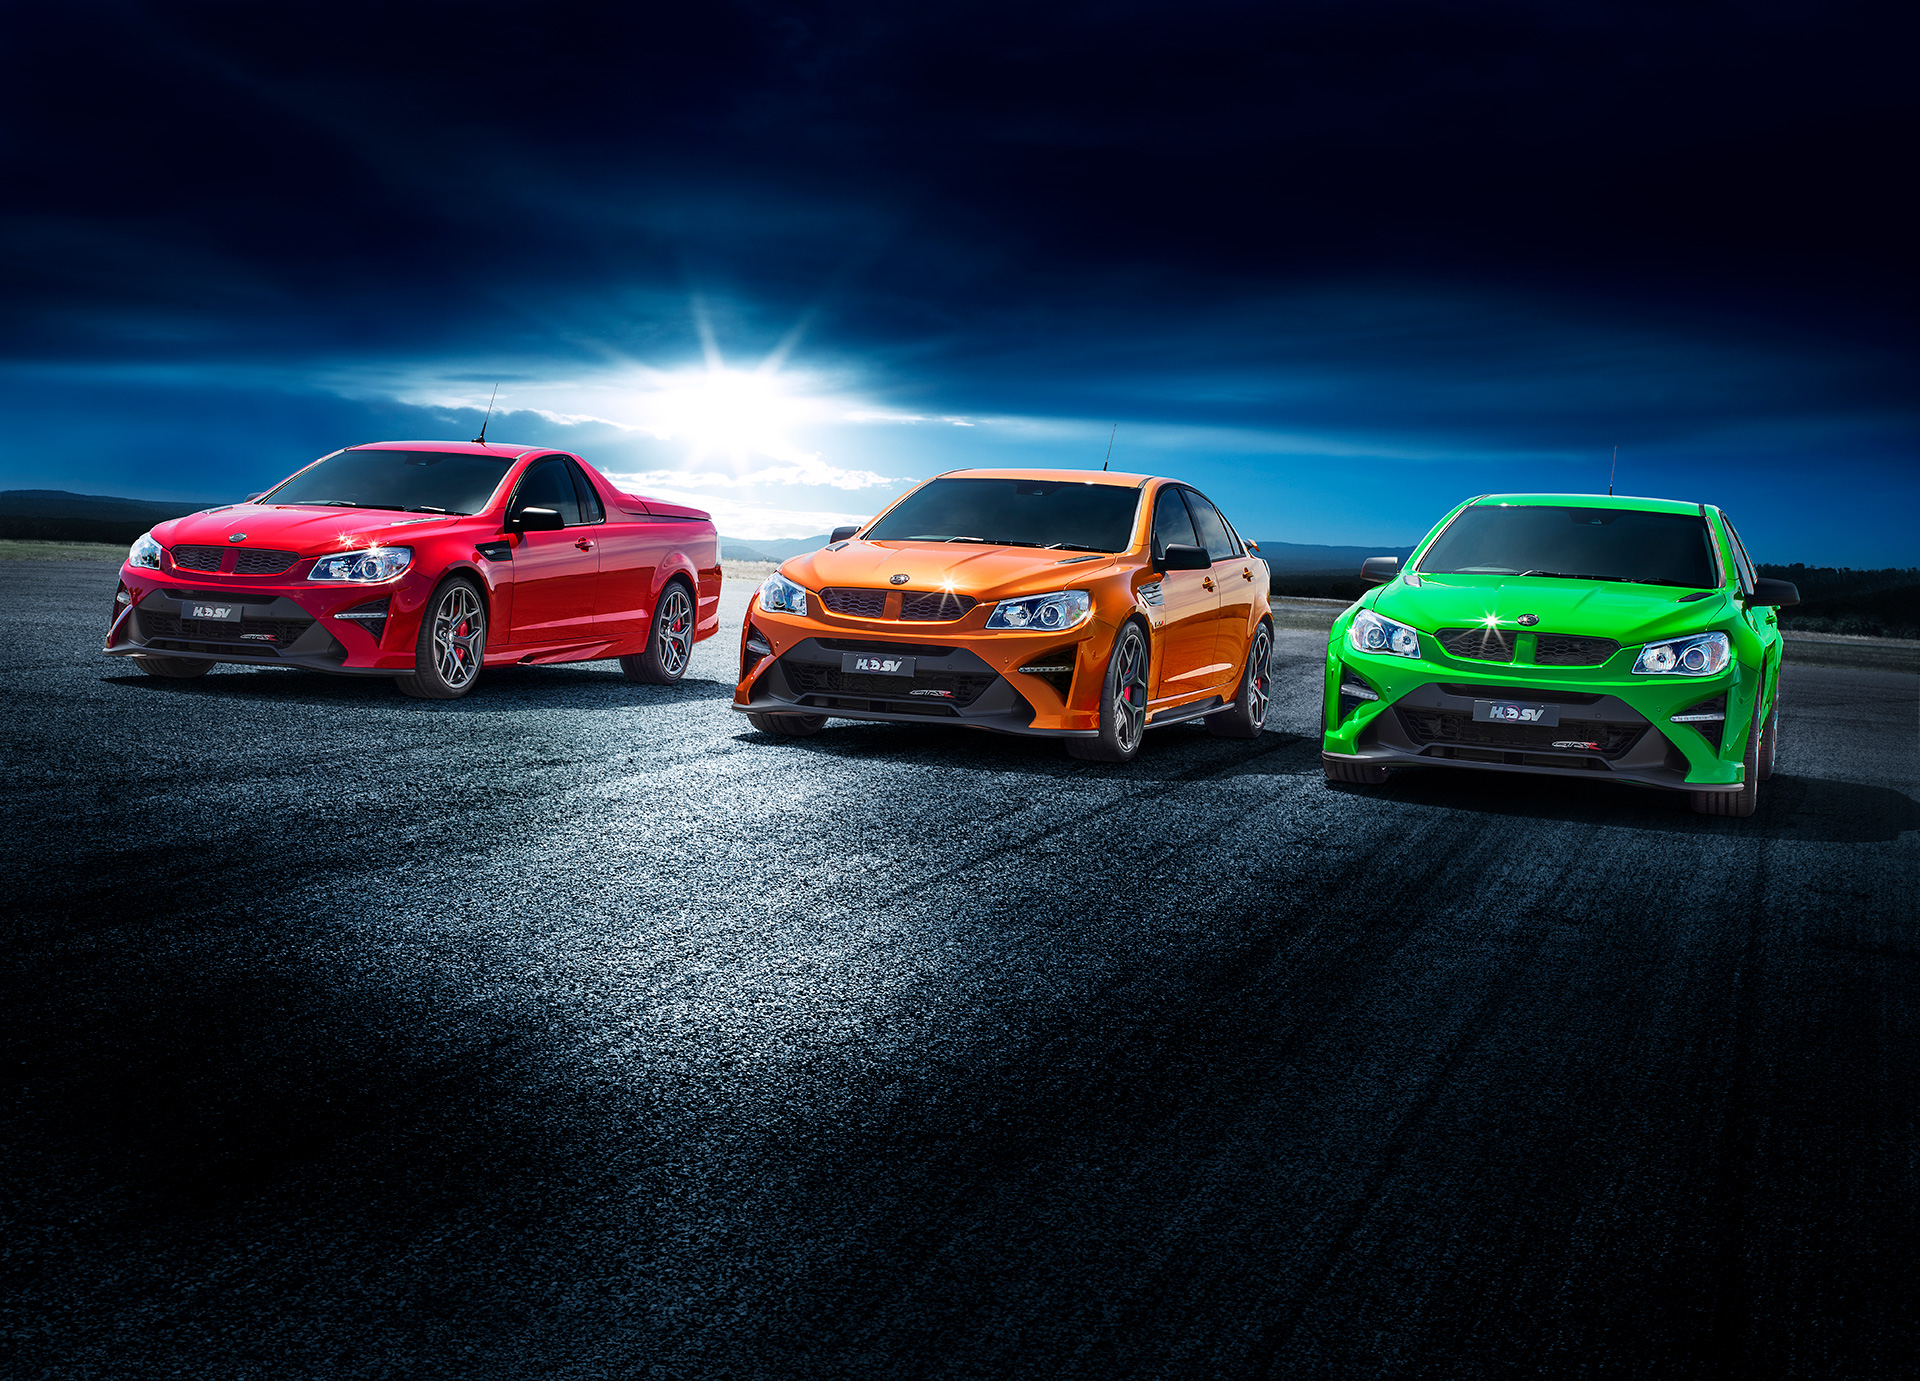 Drawing on its racing heritage, all three vehicles – GTSR (sedan), GTSR Maloo and GTSR W1 - share consistent, track-inspired styling and performance DNA.